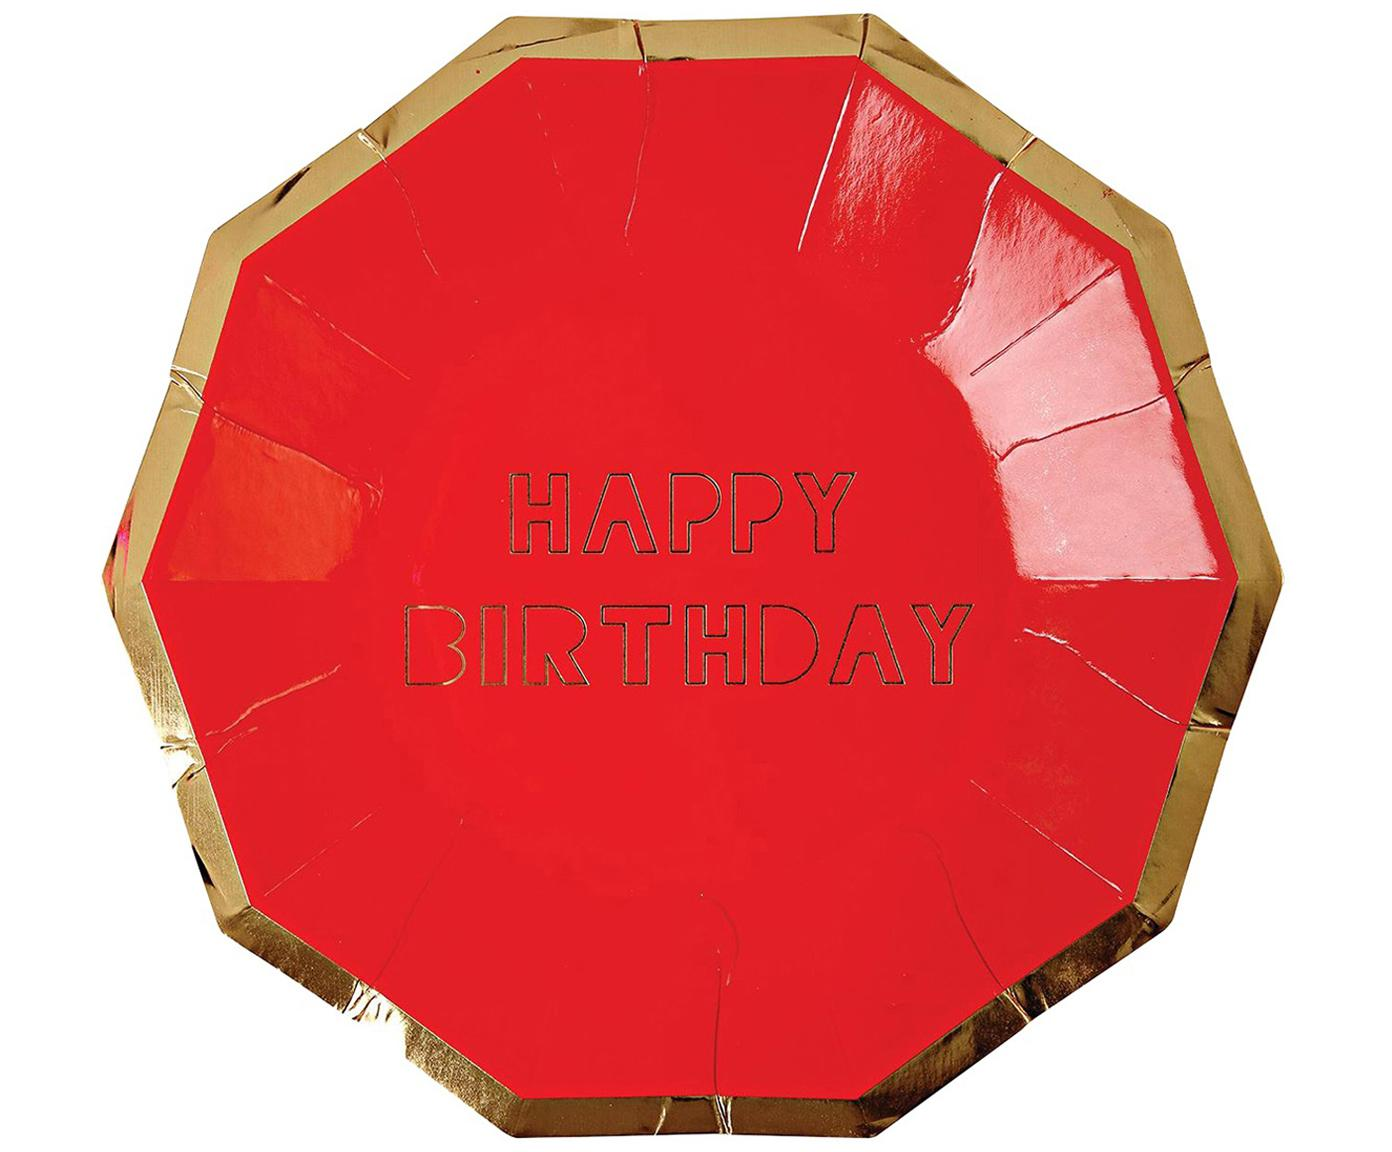 Piatto di carta Happy Birthday, 16 pz., Carta, rivestito, Rosso, dorato, L 19 x A 19 cm